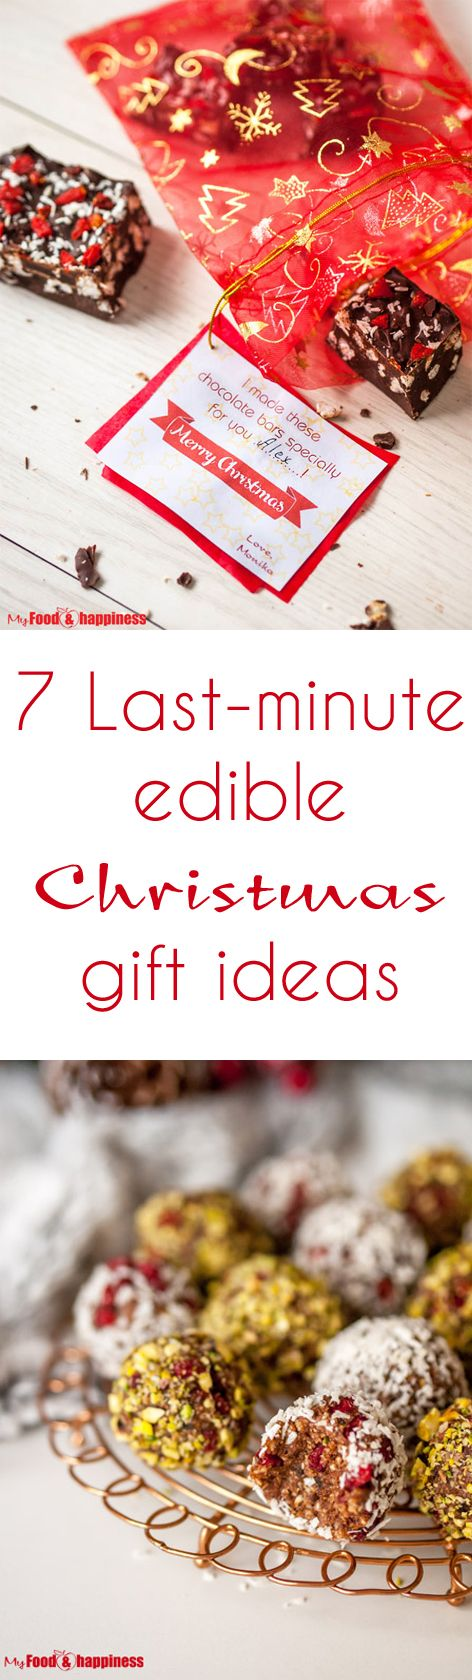 If you need some last-minute Christmas gift ideas, I have put together a list of 7 truly special edible Christmas treats you can make for your friends and family! Includes some healthy vegan treats as well as free from processes sugar!